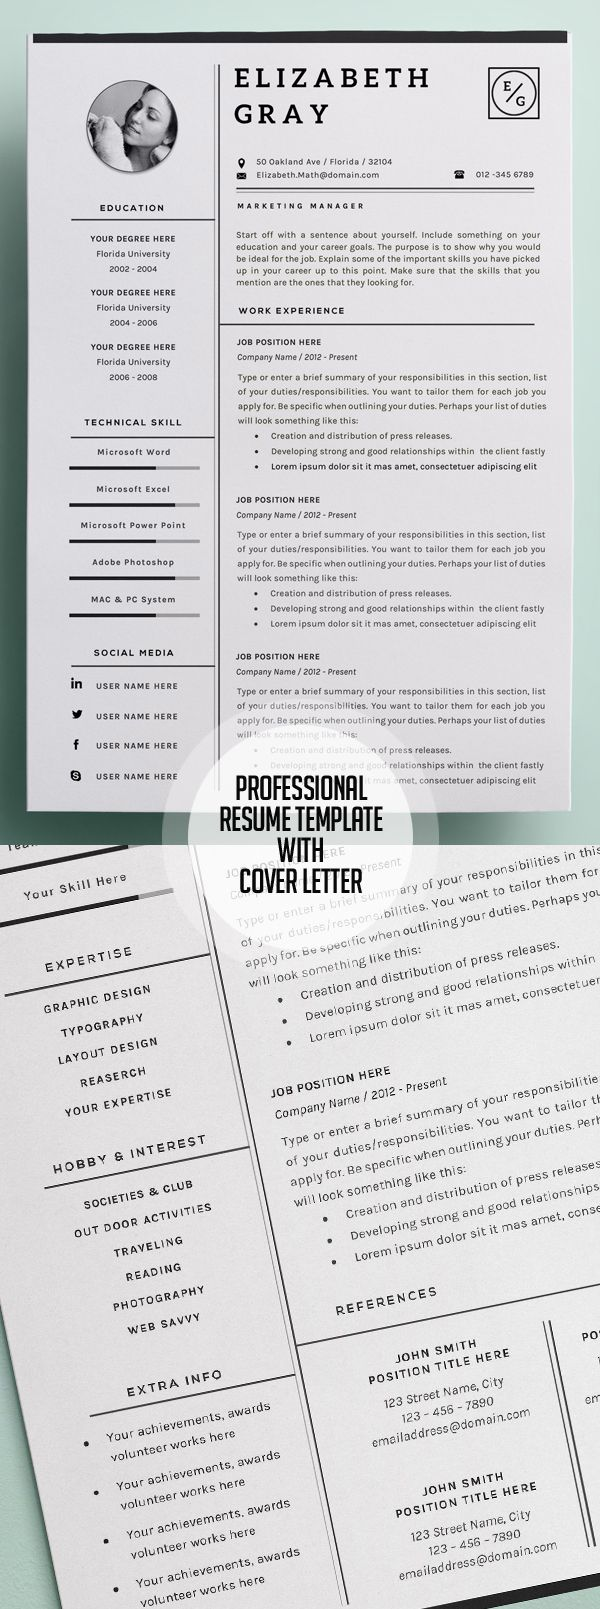 Opposenewapstandardsus  Winning  Resume Ideas On Pinterest  Resume Resume Templates And  With Handsome Professional And Modern Resume Template With Page Cover Cvtemplate With Awesome Grad School Resume Sample Also Example Of Perfect Resume In Addition Resume Financial Analyst And Objective For Accounting Resume As Well As Resume Objective Vs Summary Additionally Should Your Resume Be One Page From Pinterestcom With Opposenewapstandardsus  Handsome  Resume Ideas On Pinterest  Resume Resume Templates And  With Awesome Professional And Modern Resume Template With Page Cover Cvtemplate And Winning Grad School Resume Sample Also Example Of Perfect Resume In Addition Resume Financial Analyst From Pinterestcom